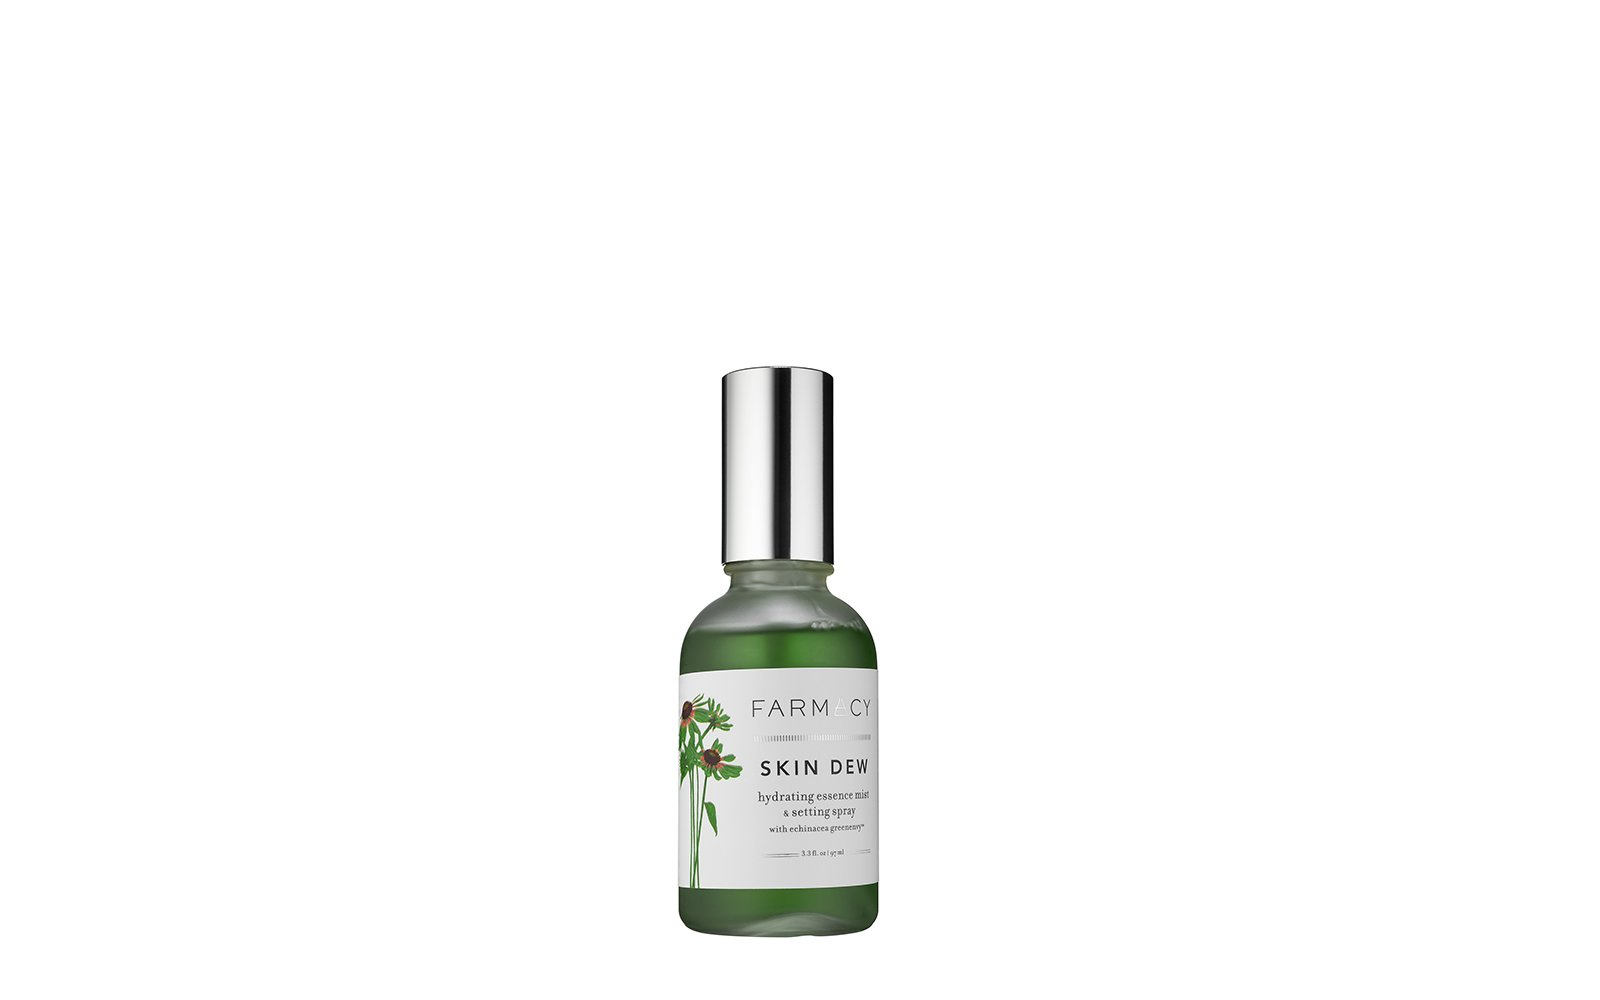 Farmacy Skin face mist